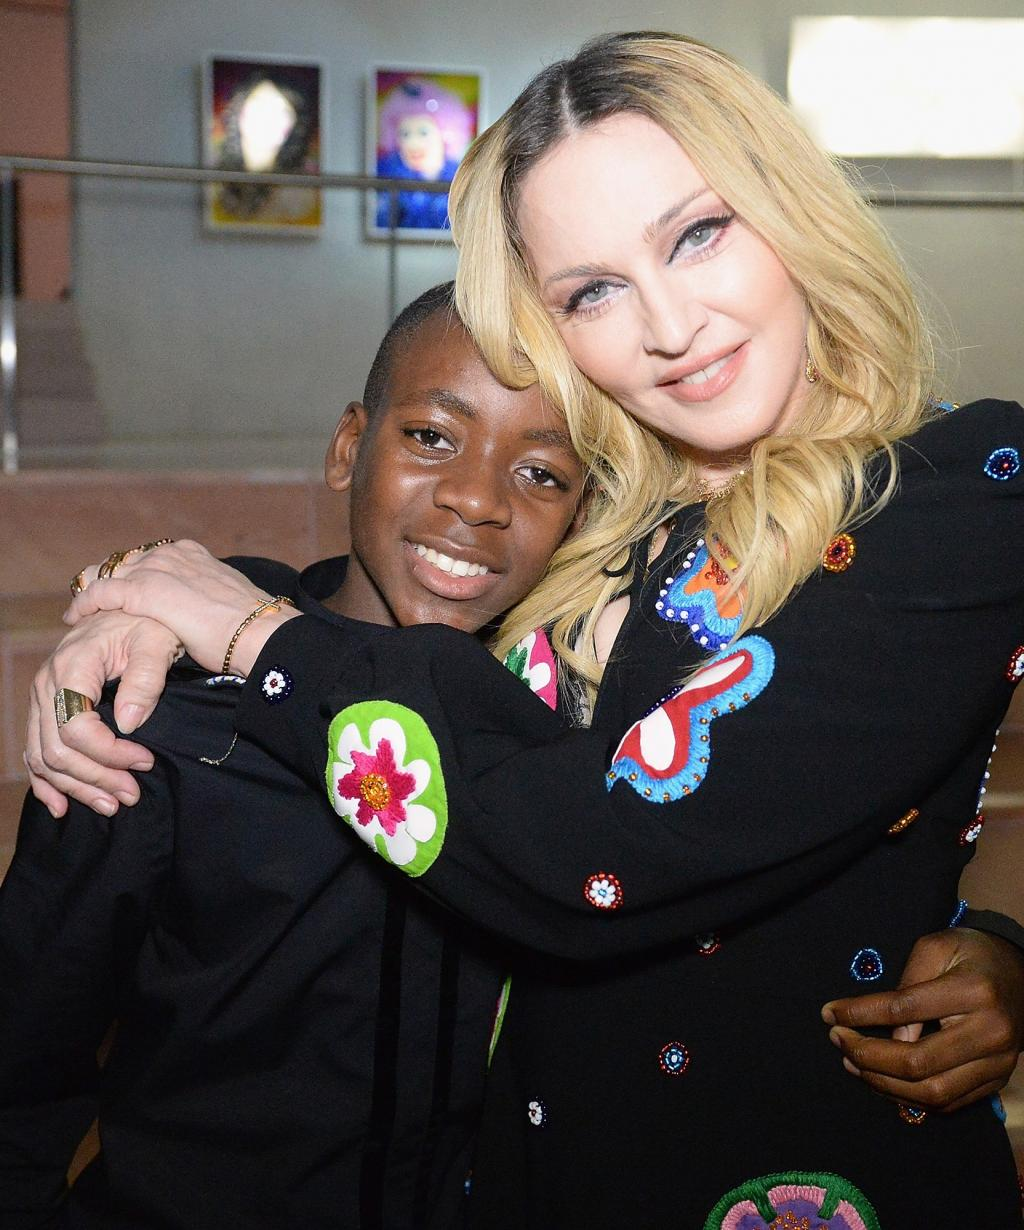 Ski Bunnies!      '  Madonna Shares Adorable Photo with Her Son and Daughter During the Holidays